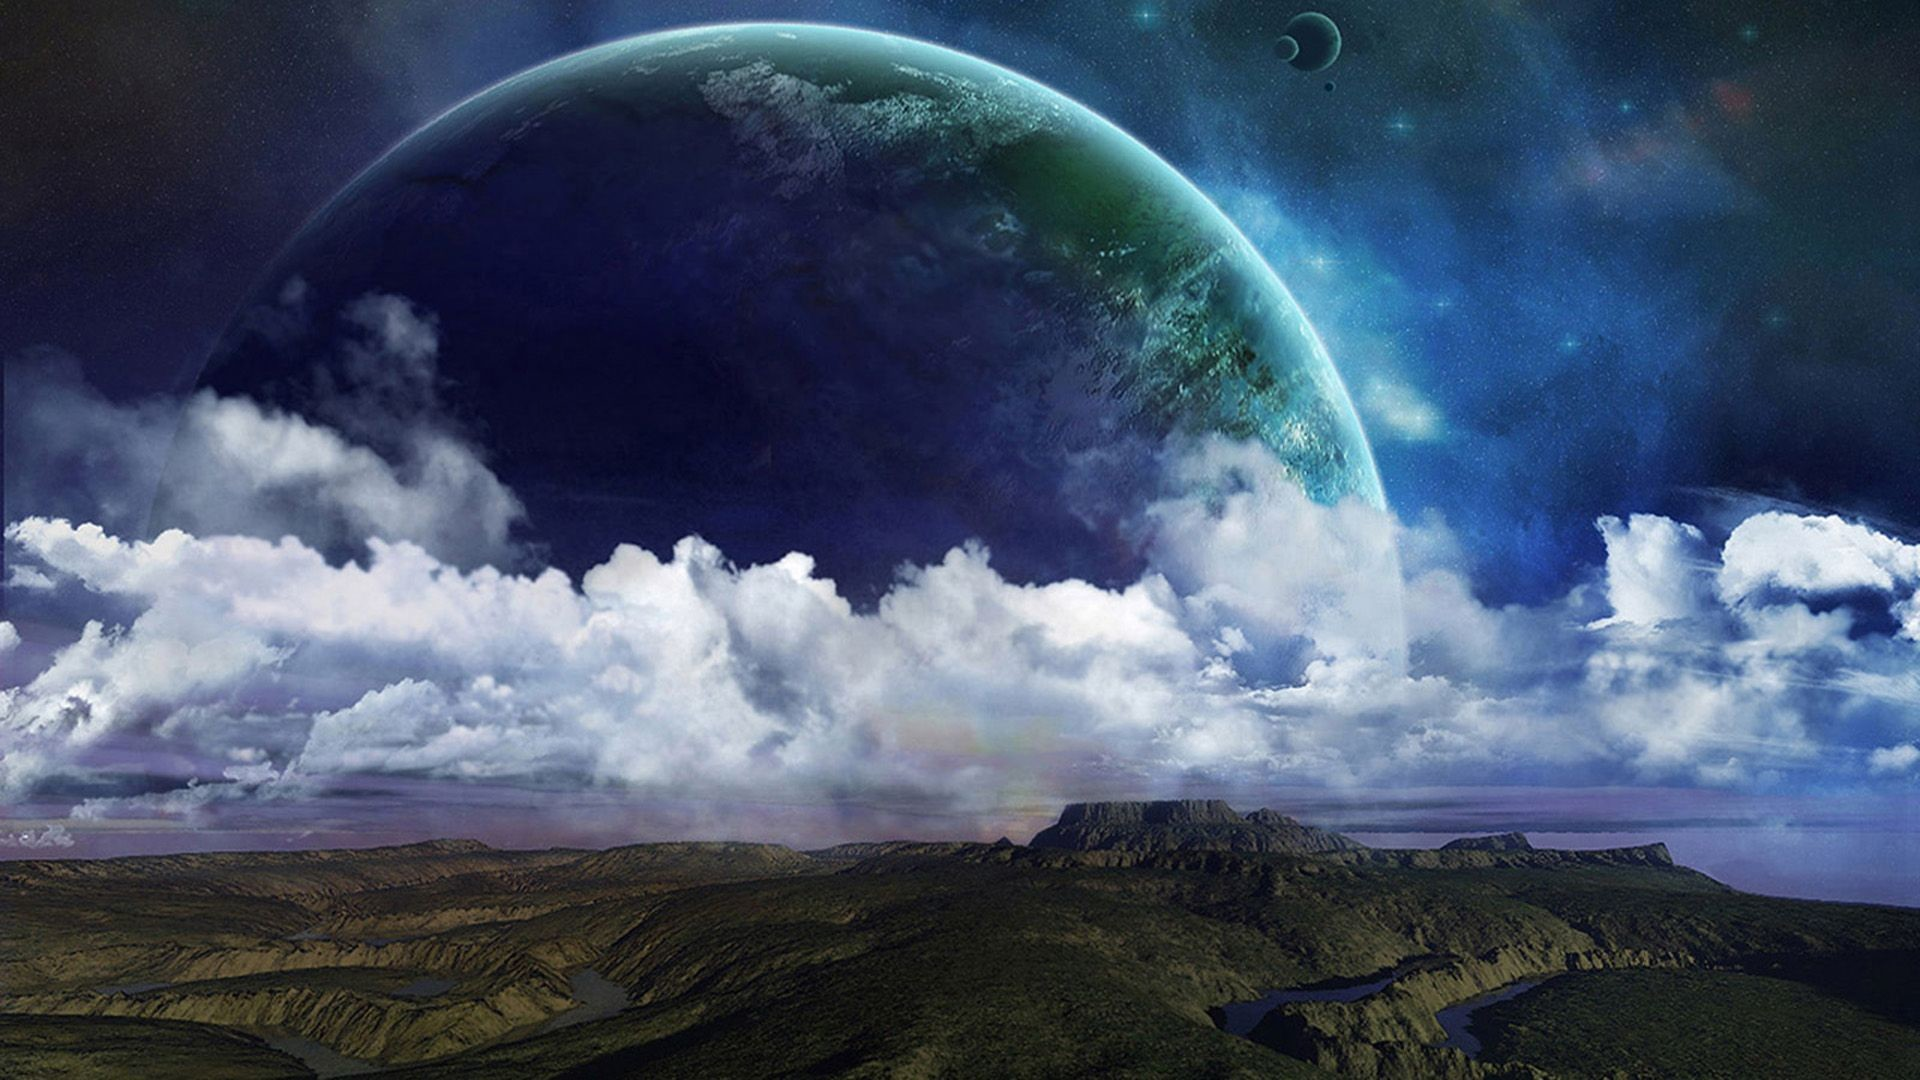 Space HD Wallpapers 2   Space HD Wallpapers   Pinterest   Hd wallpaper,  Wallpaper and Wallpaper backgrounds